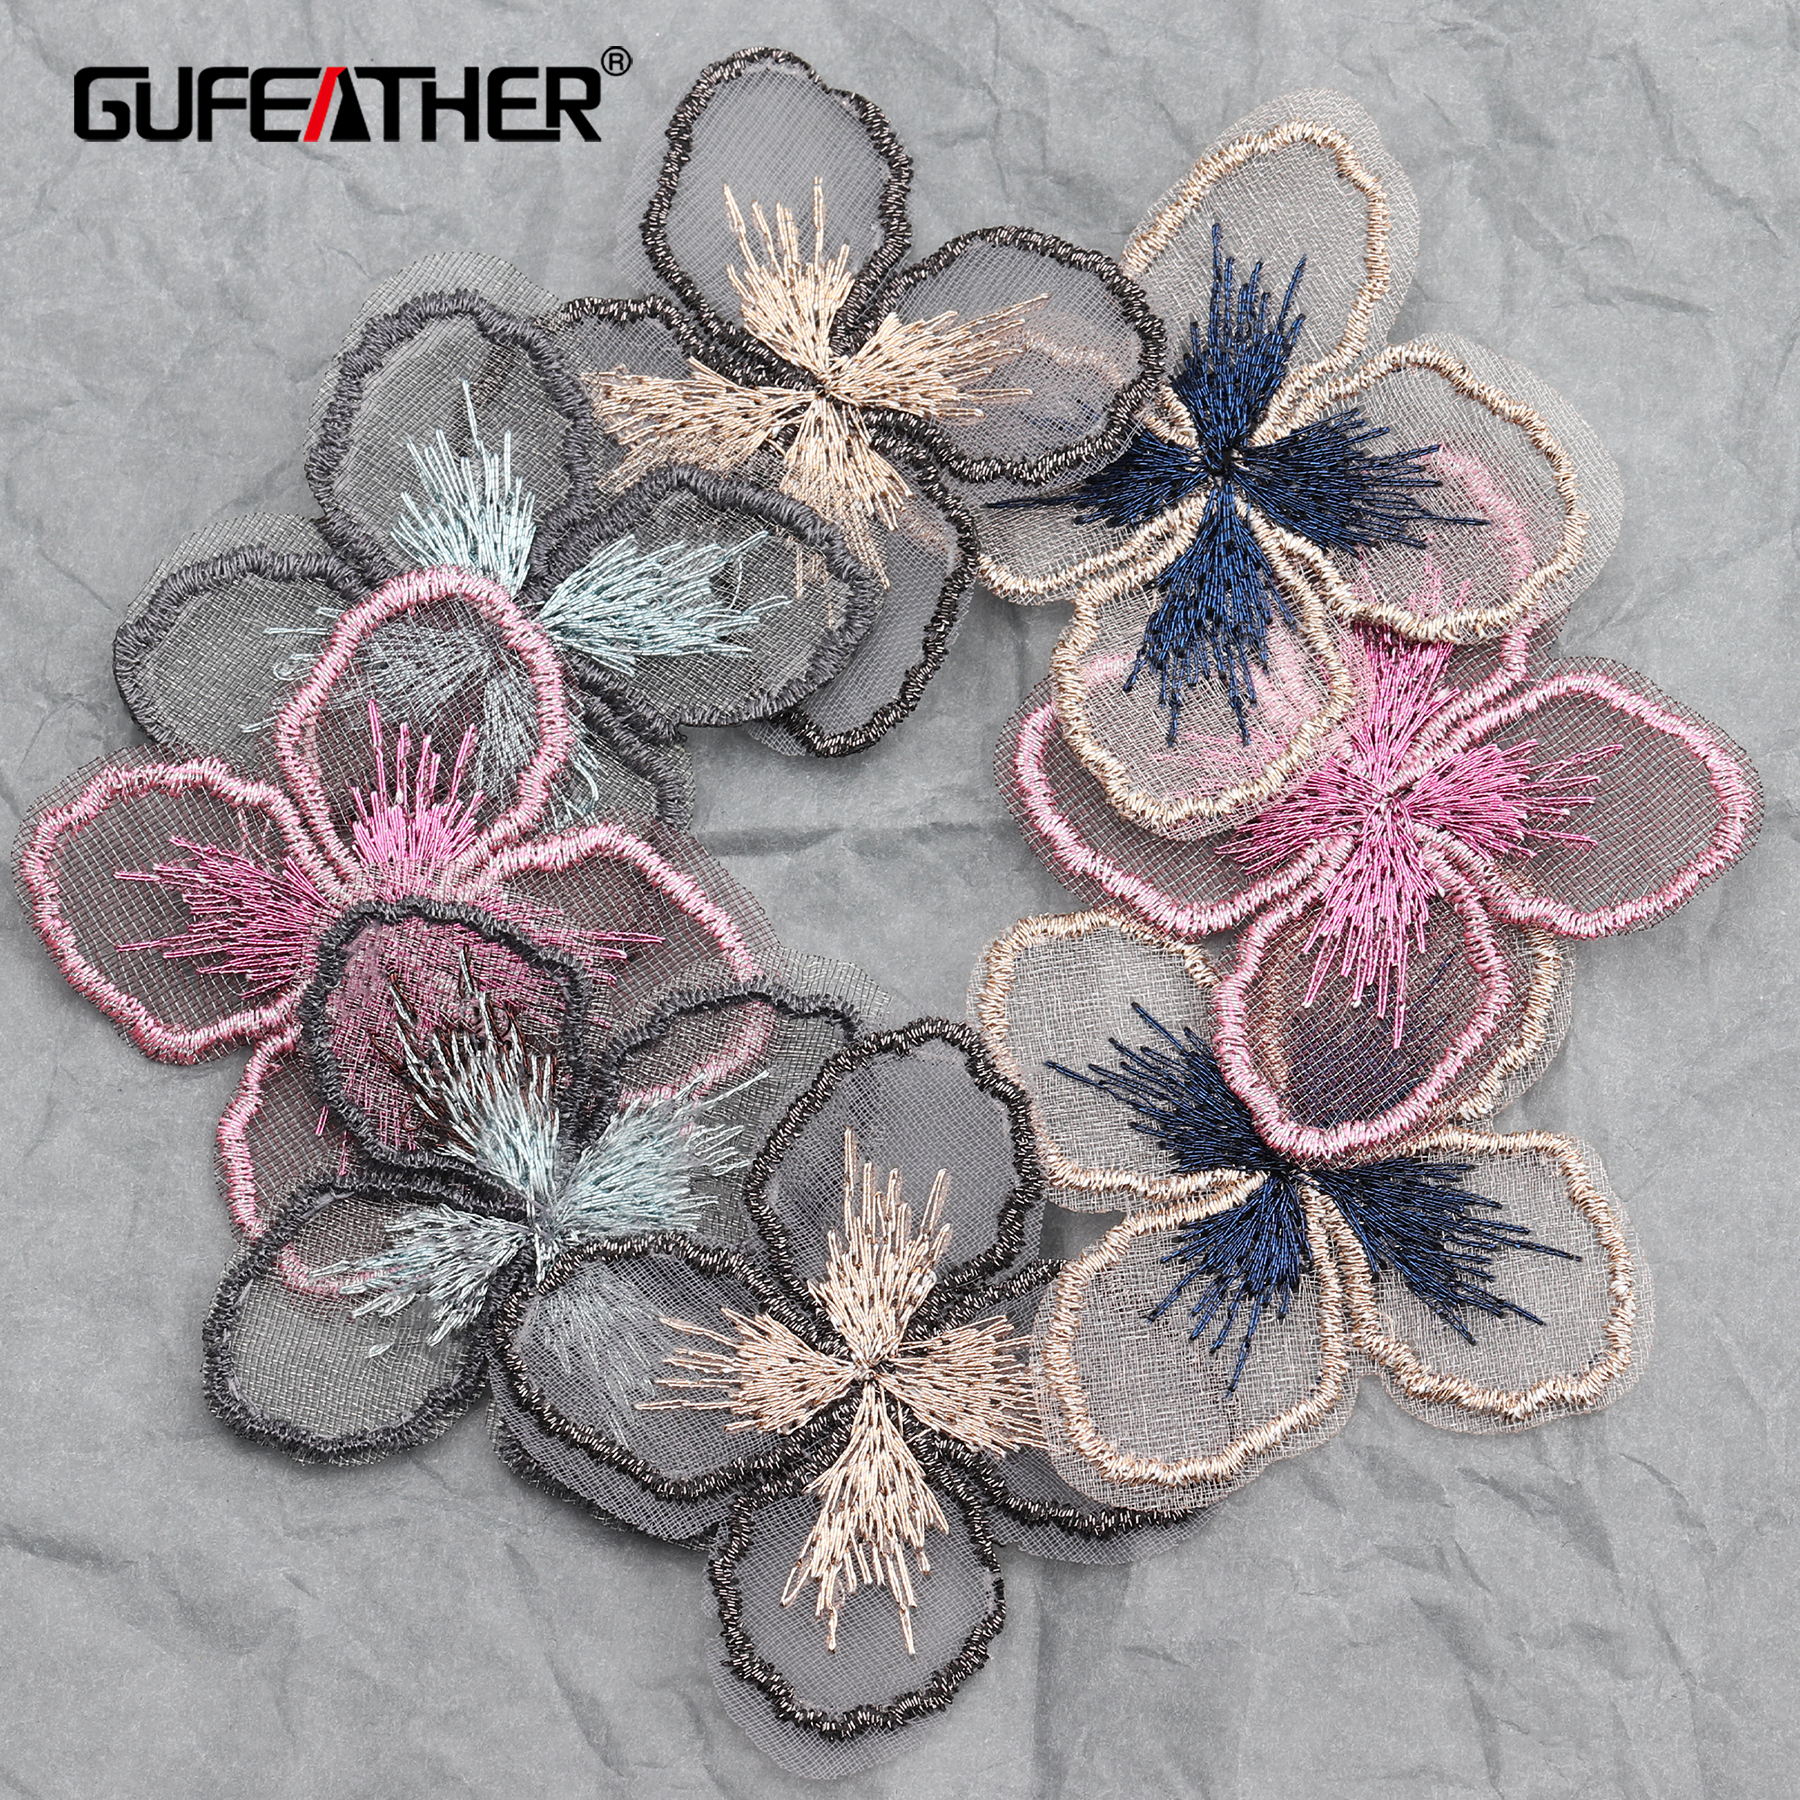 GUFEATHER L208,diy Tassel,jewelry Accessories,patch Accessories,hand Made,Knitted,jewelry Making,jewelry Findings,20pcs/lot